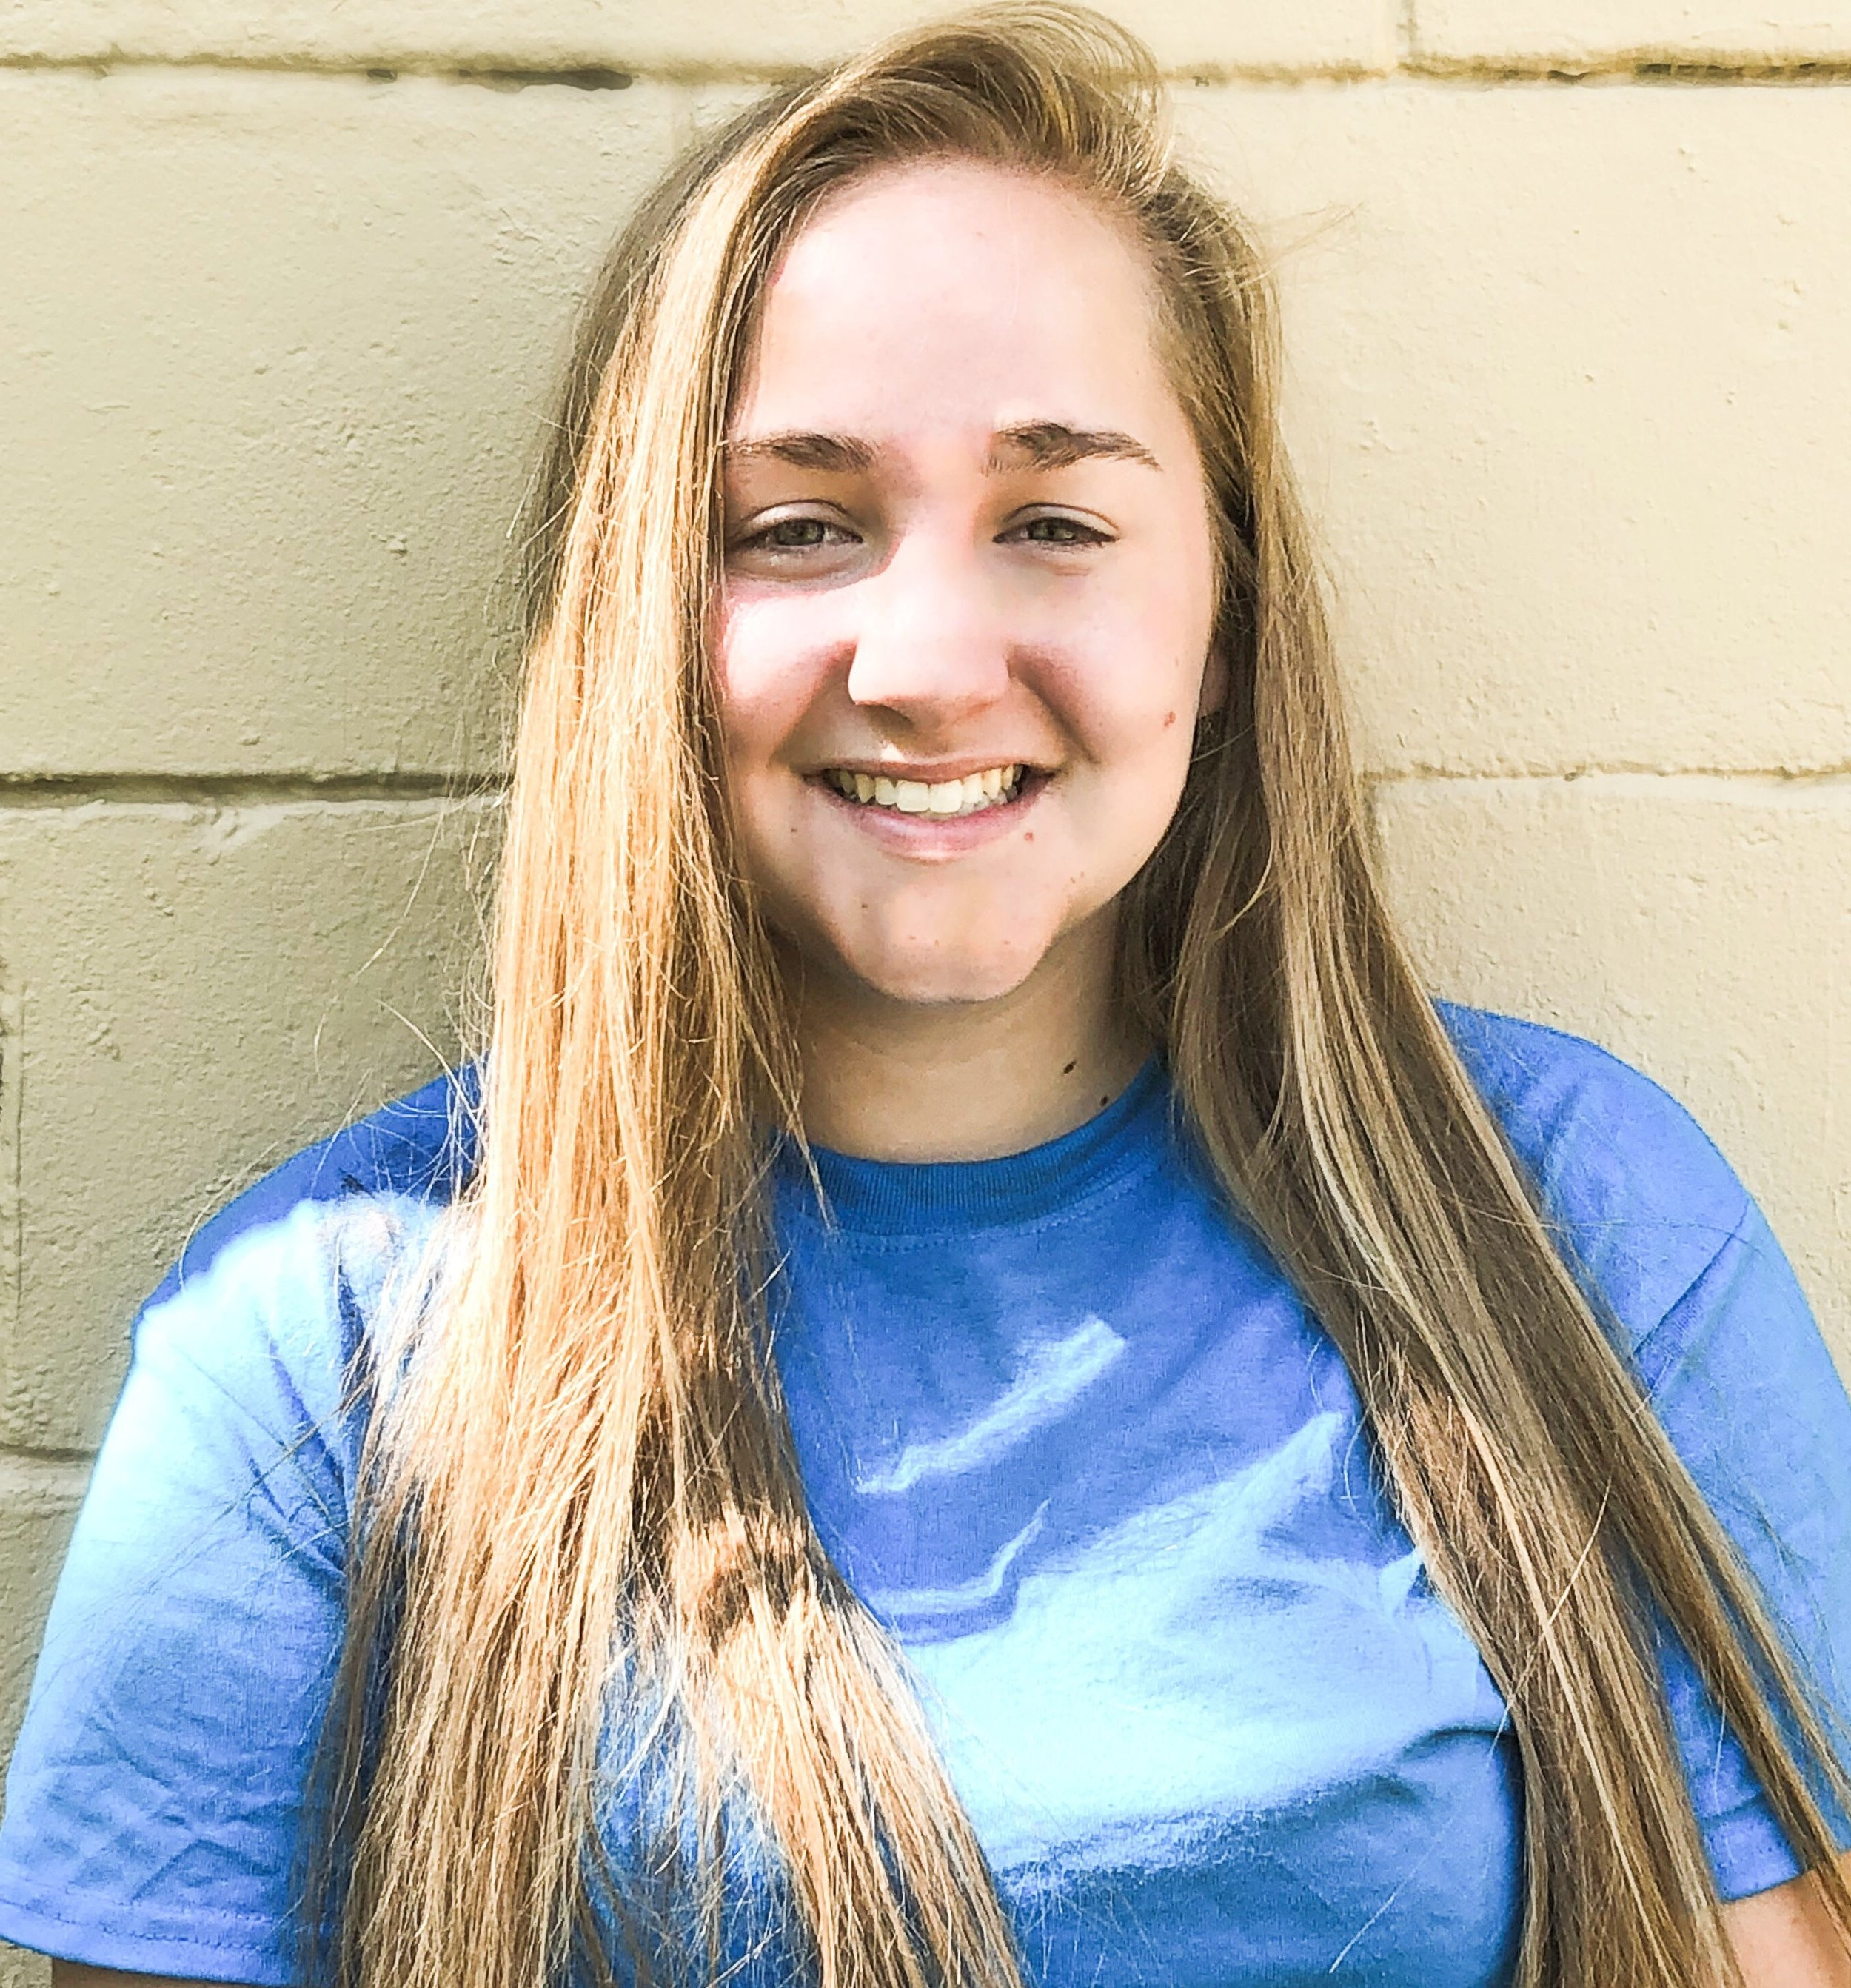 Kalissa - Kalissa Walker has been with Kids At Their Best for over 5 years volunteering and working. She loves spending her summer playing and hanging out with the kids.